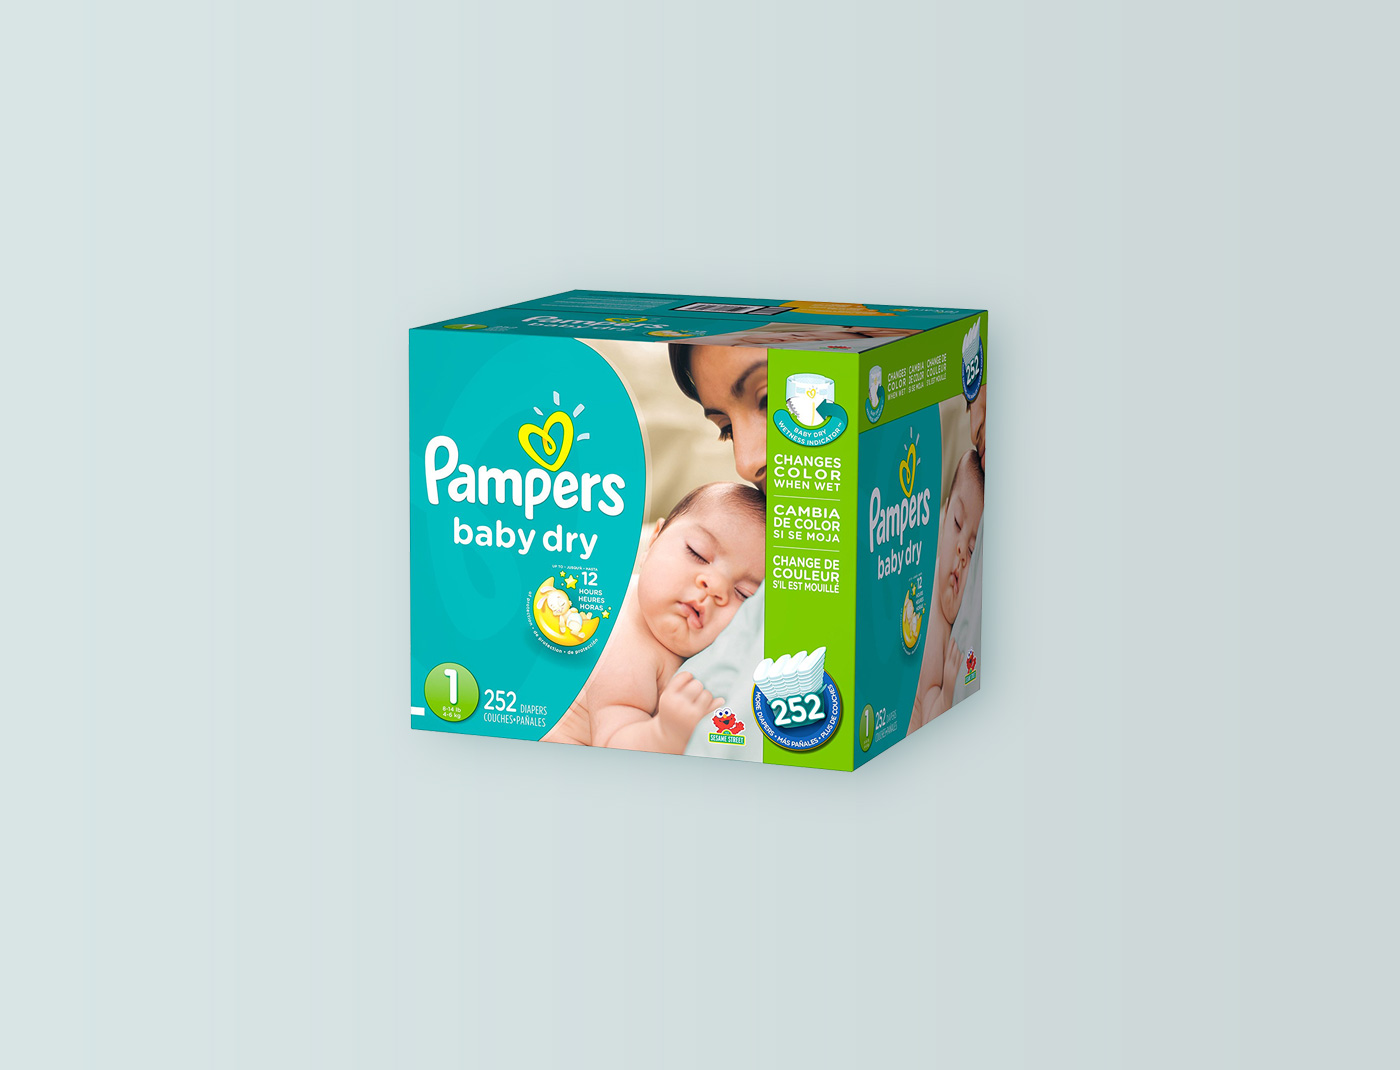 Pampers Baby Dry Size: 1, Count: 252